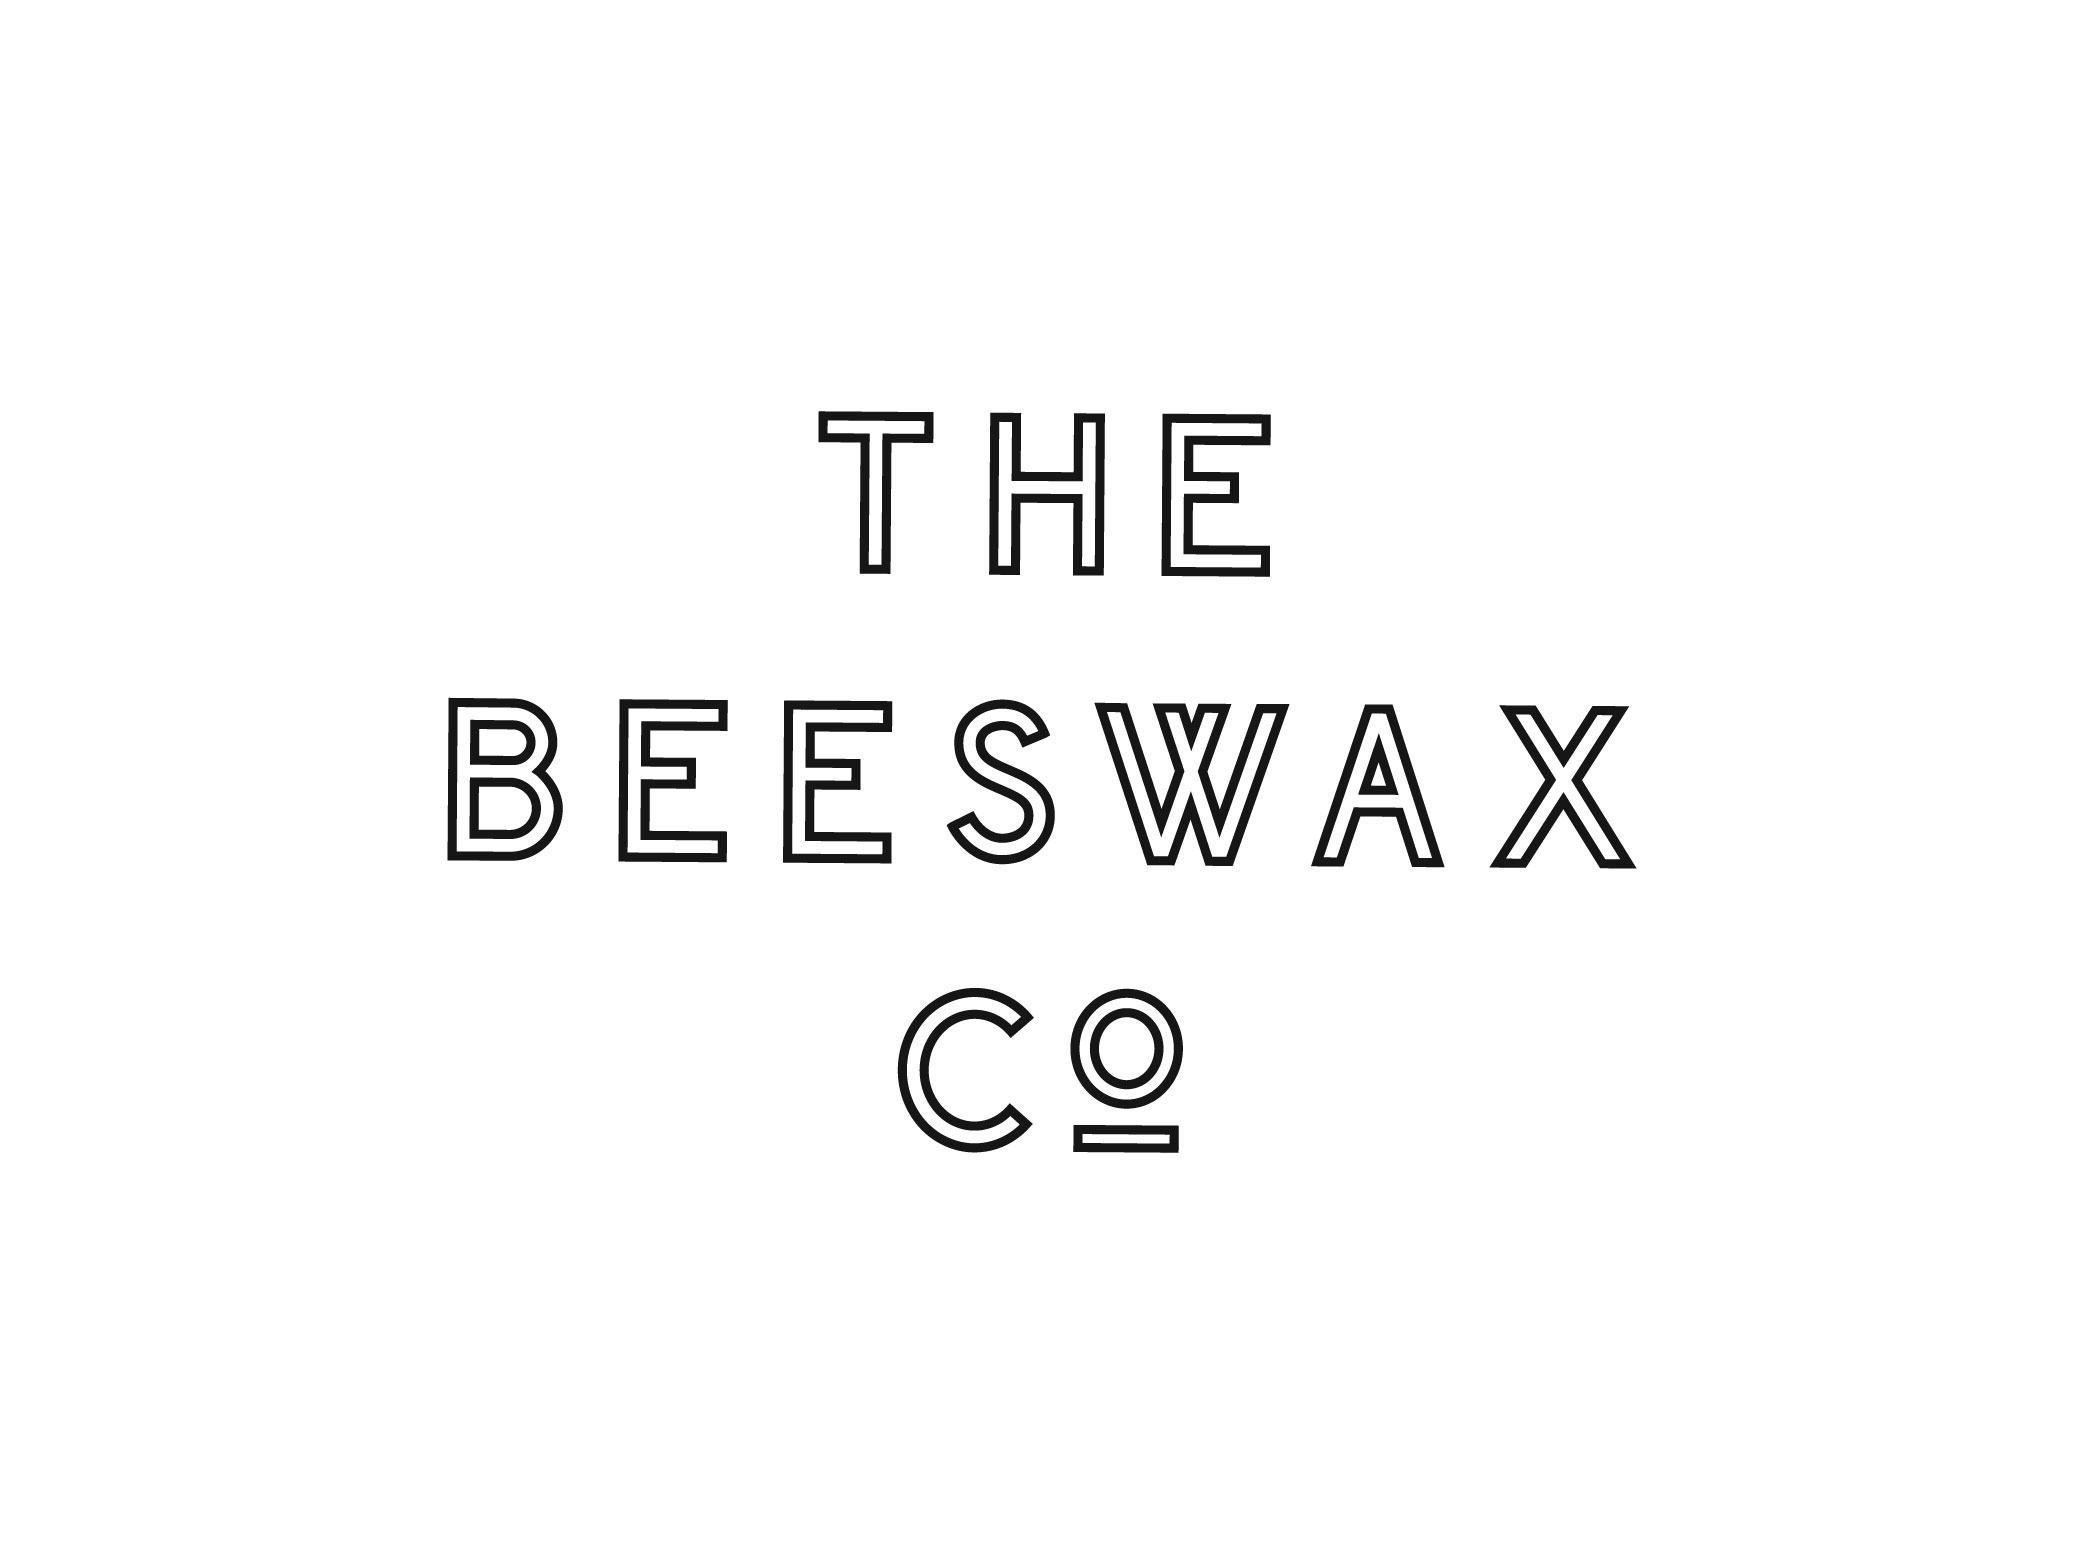 Studio Freight - The Beeswax Co Logo